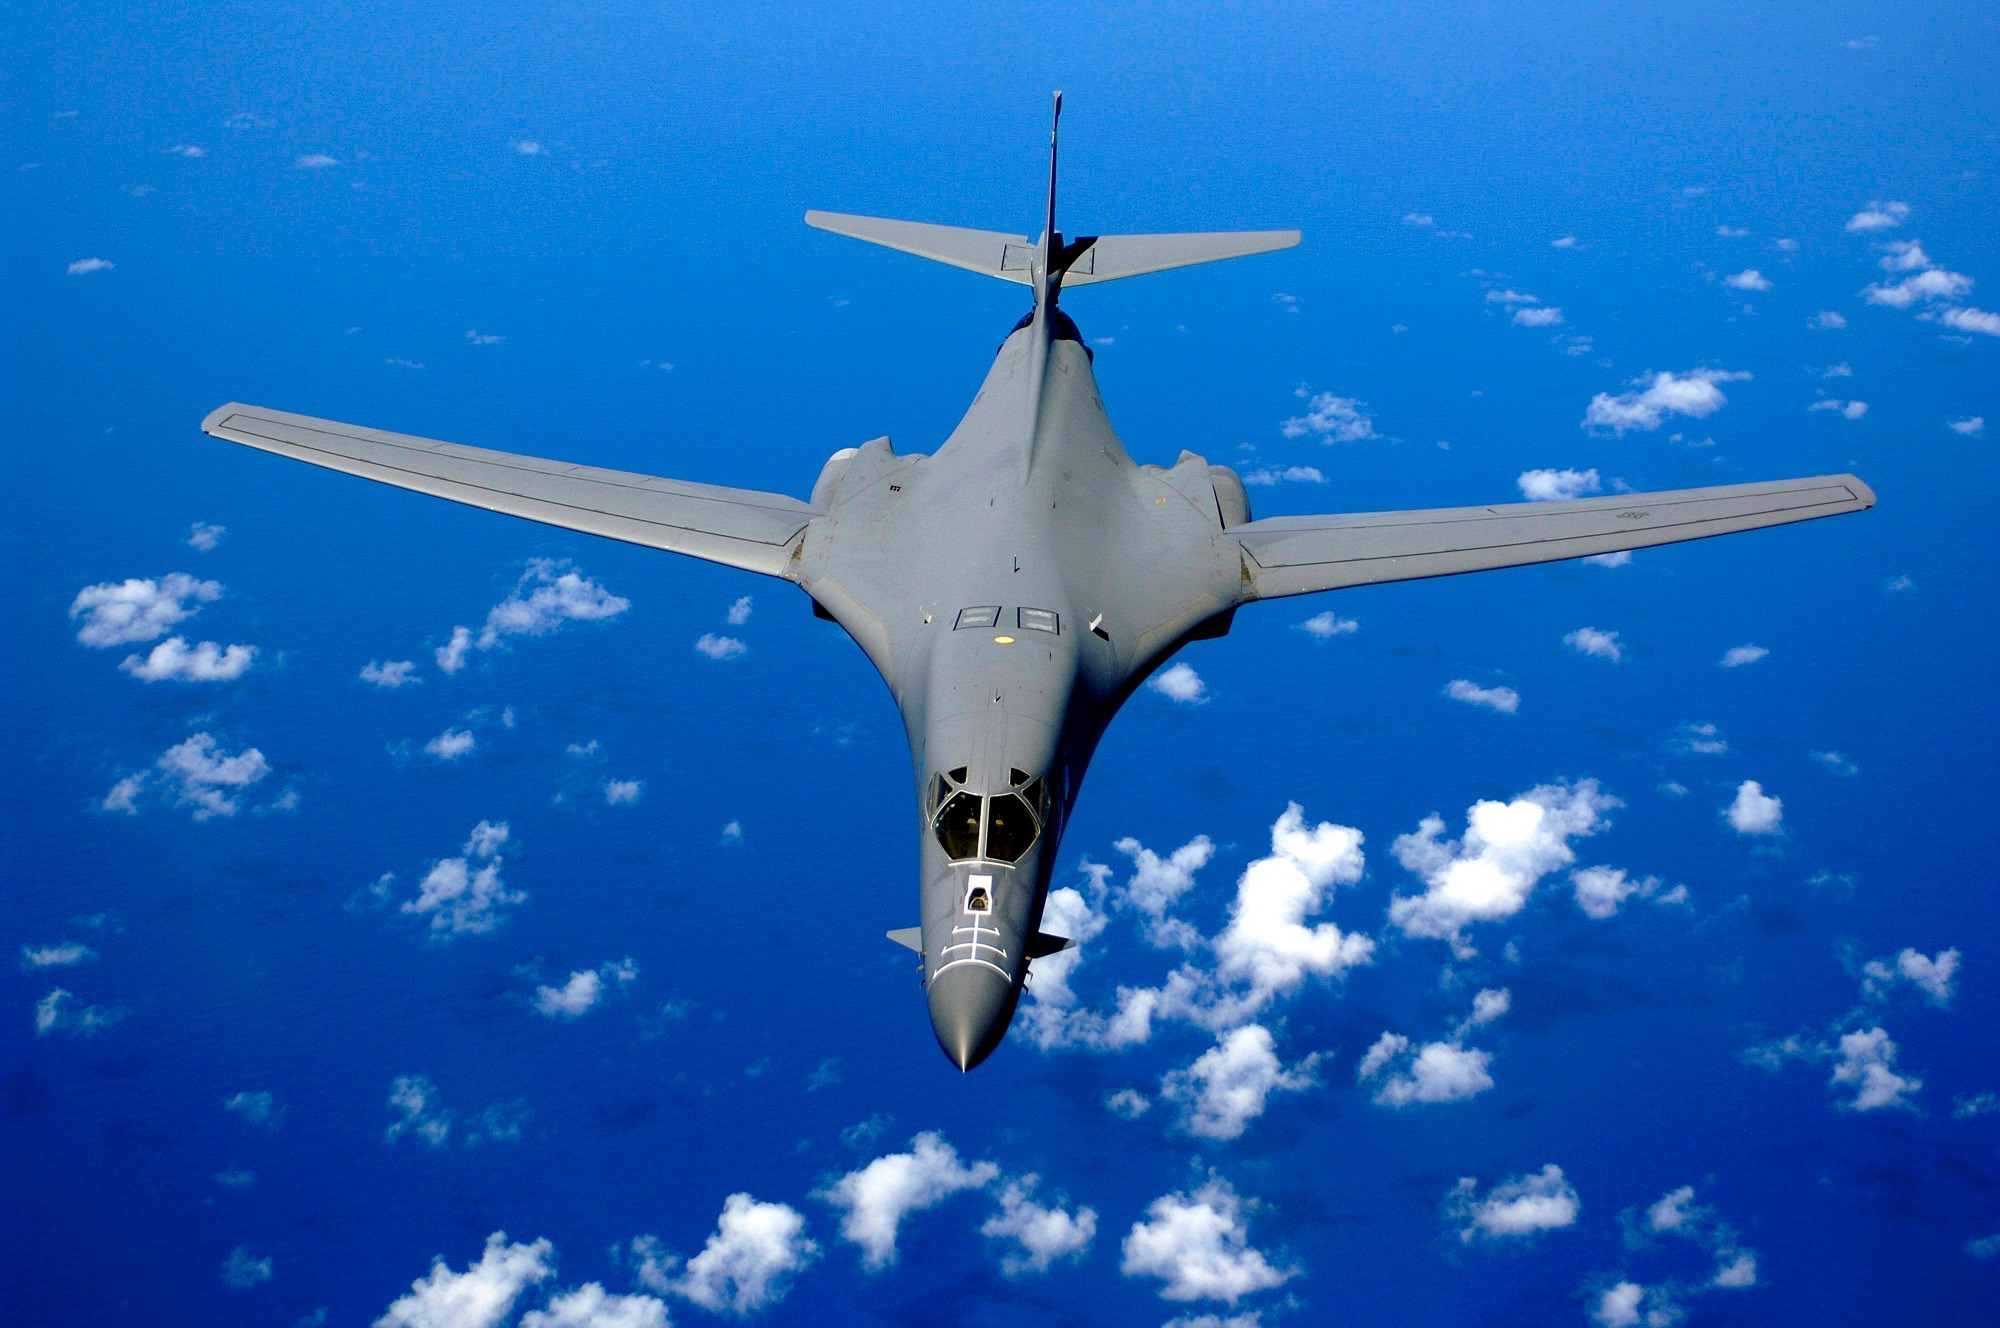 Air Force to Retire Classic B-1 Bombers as Stealthy New B-21s Arrive - Warrior Maven